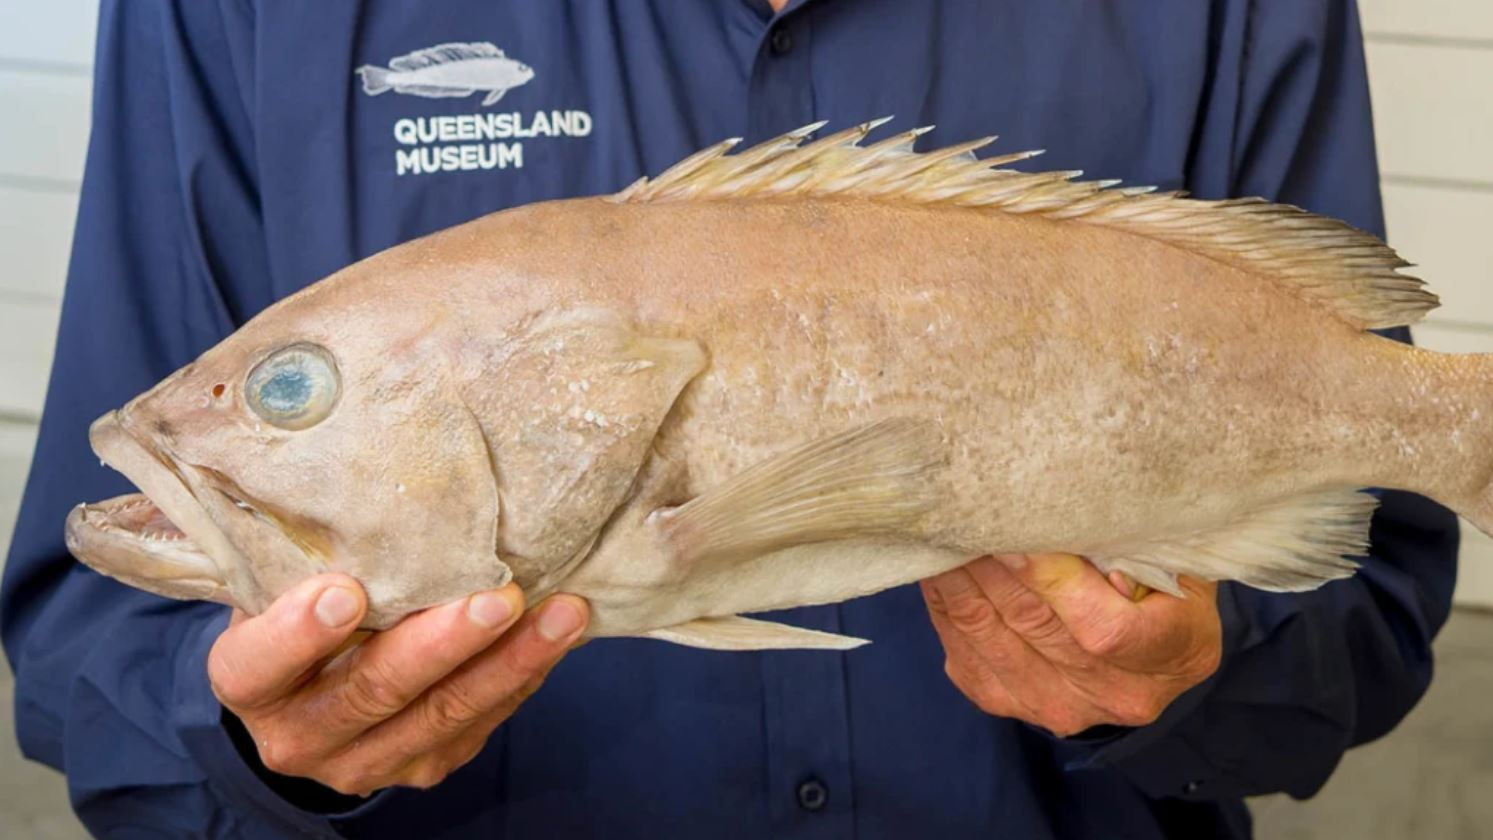 Turns out Aussies have been eating a fish unknown to science